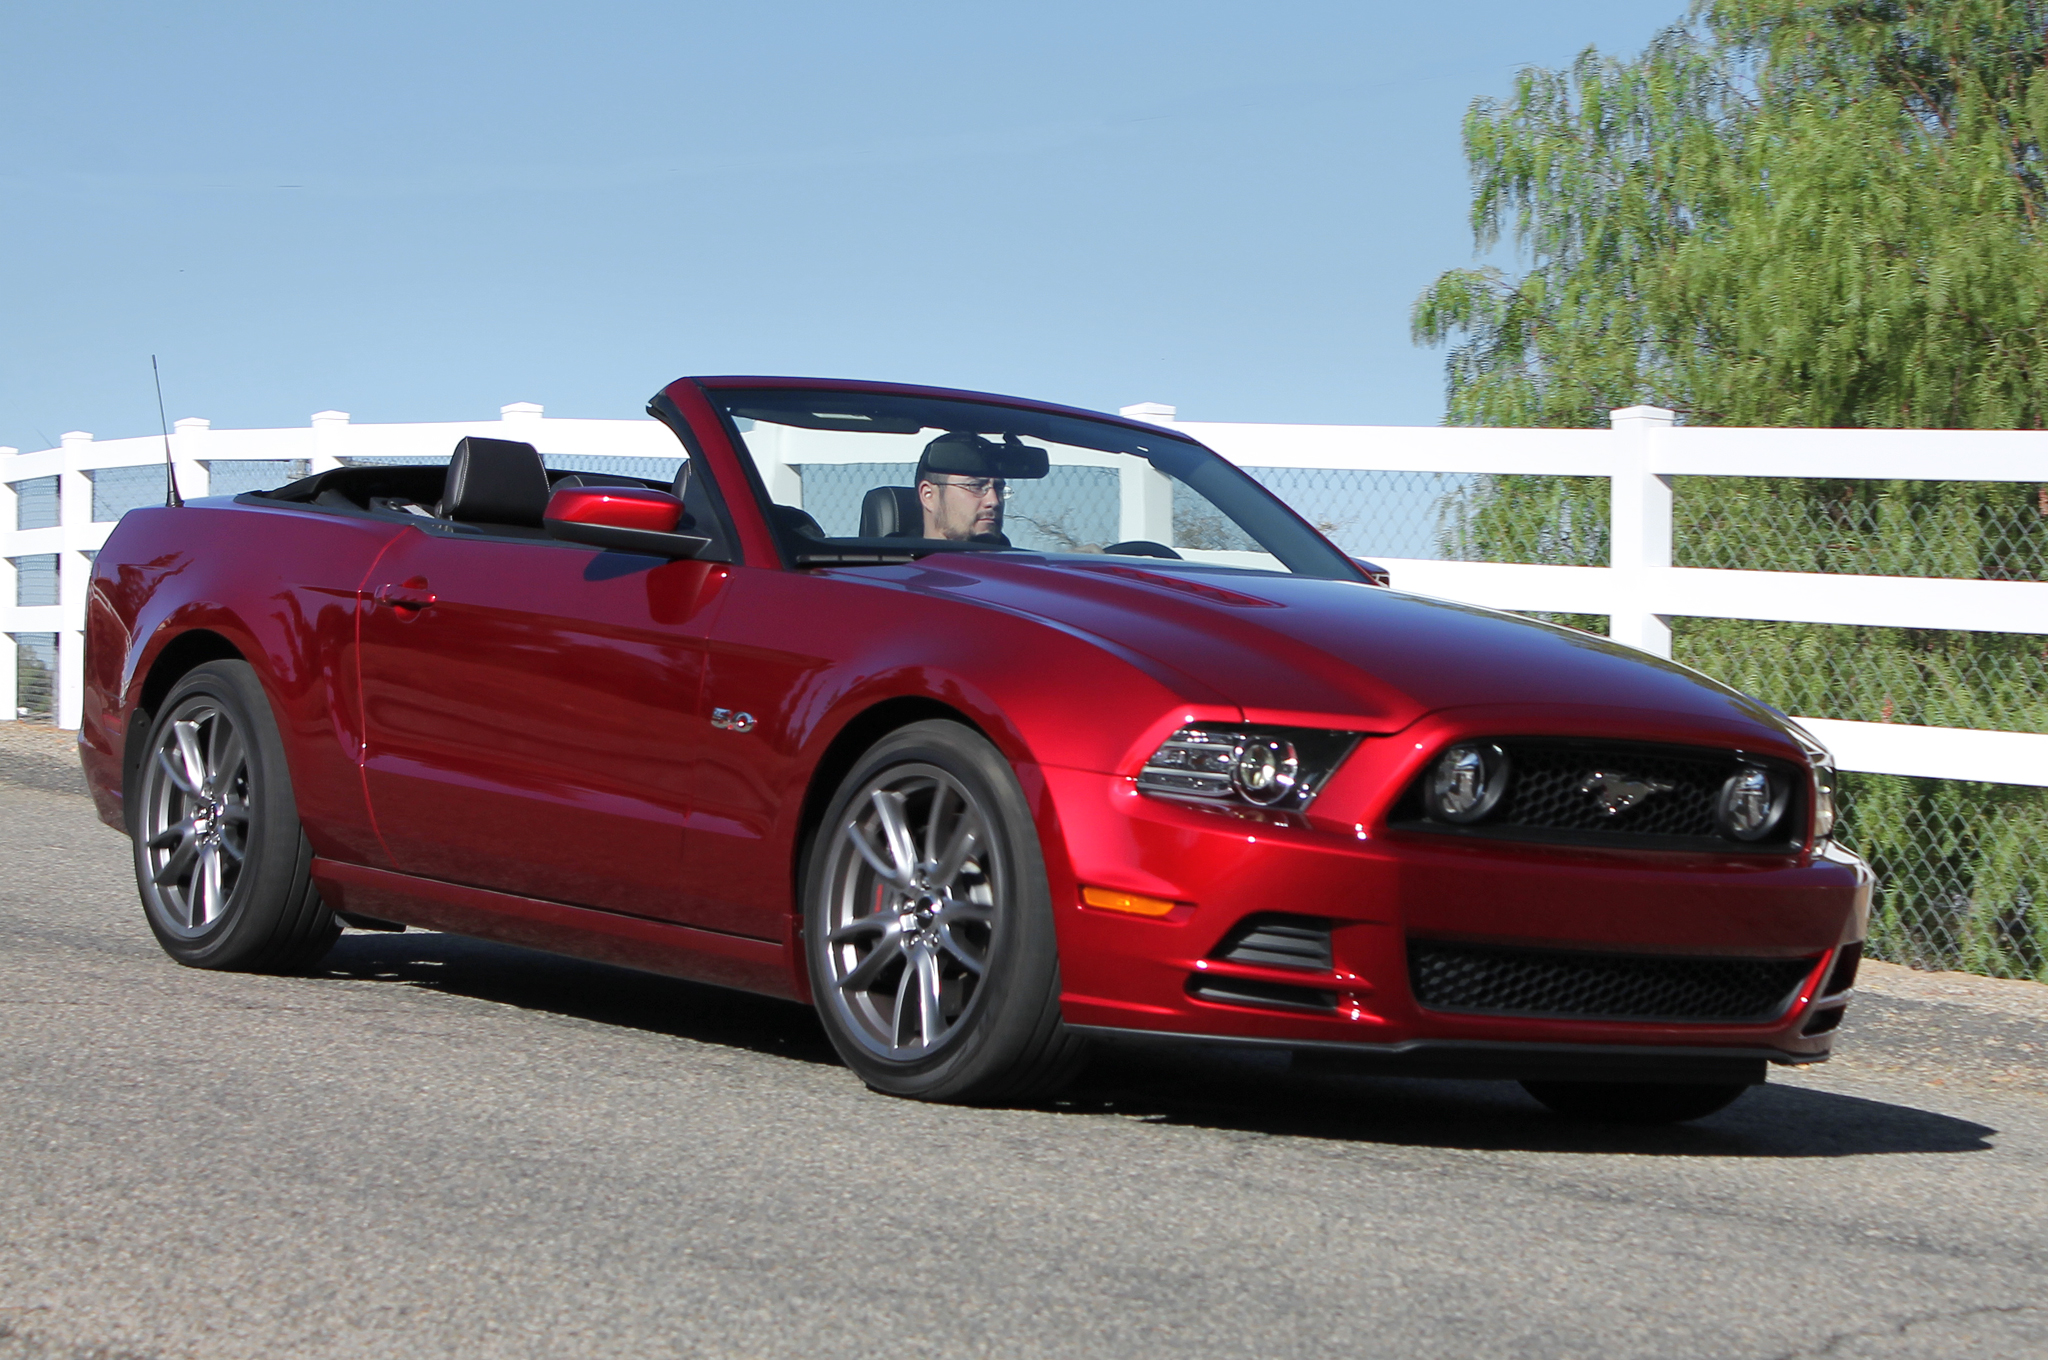 2014 Ford Mustang #21